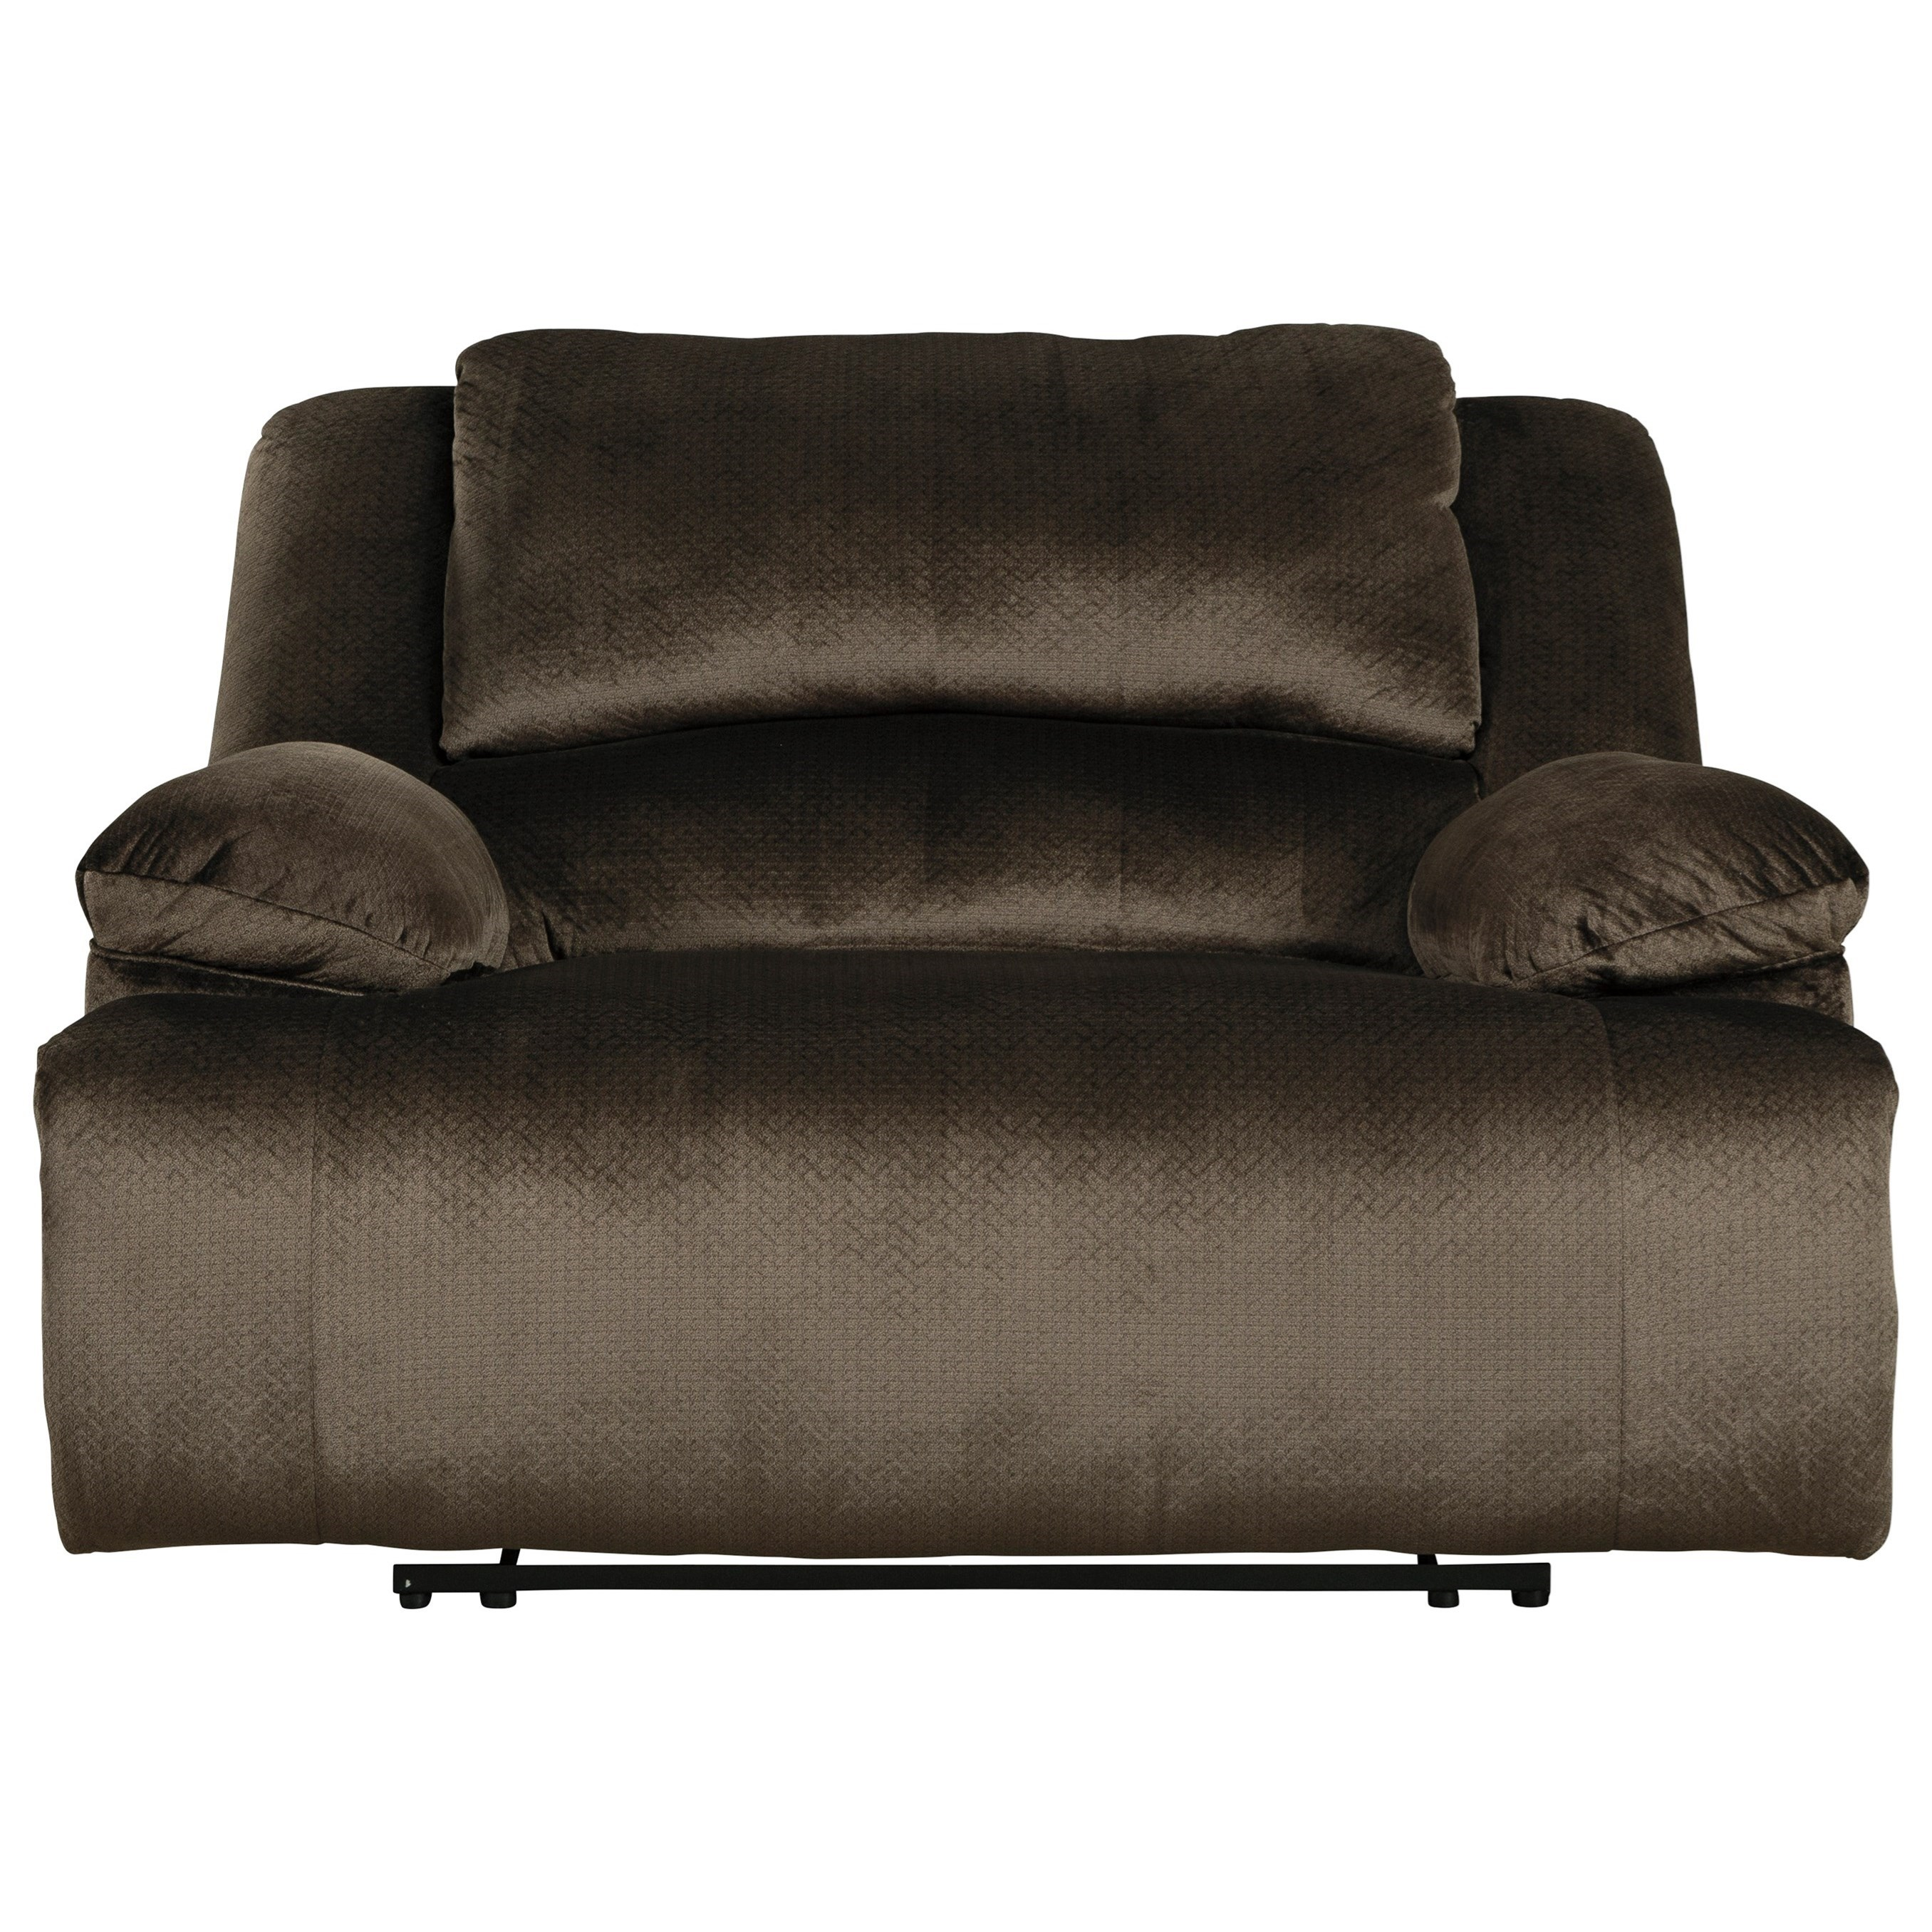 Clonmel Zero Wall Wide Seat Recliner by Signature Design by Ashley at Value City Furniture